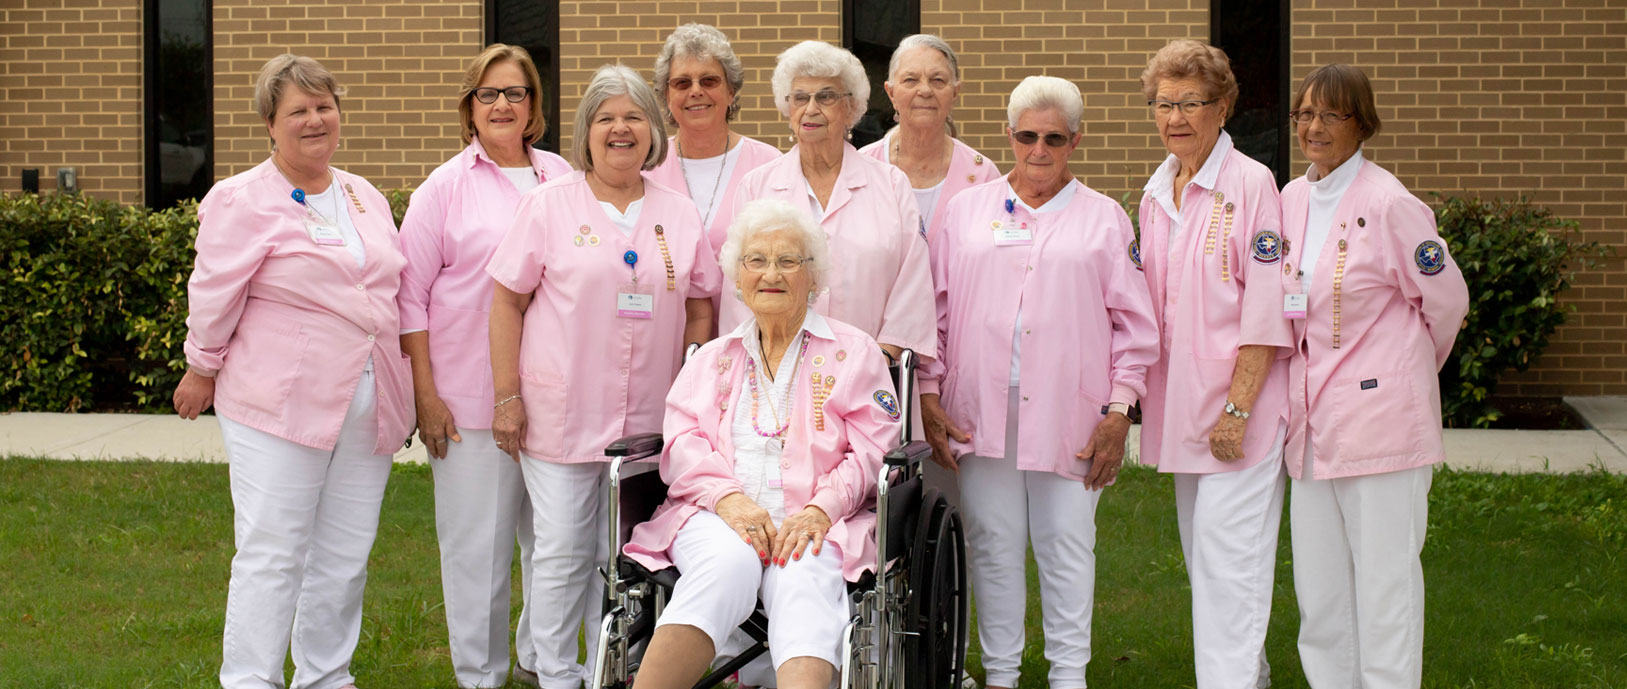 a picture of 10 older ladies all wearing pink nurses jackets with white scrub pants